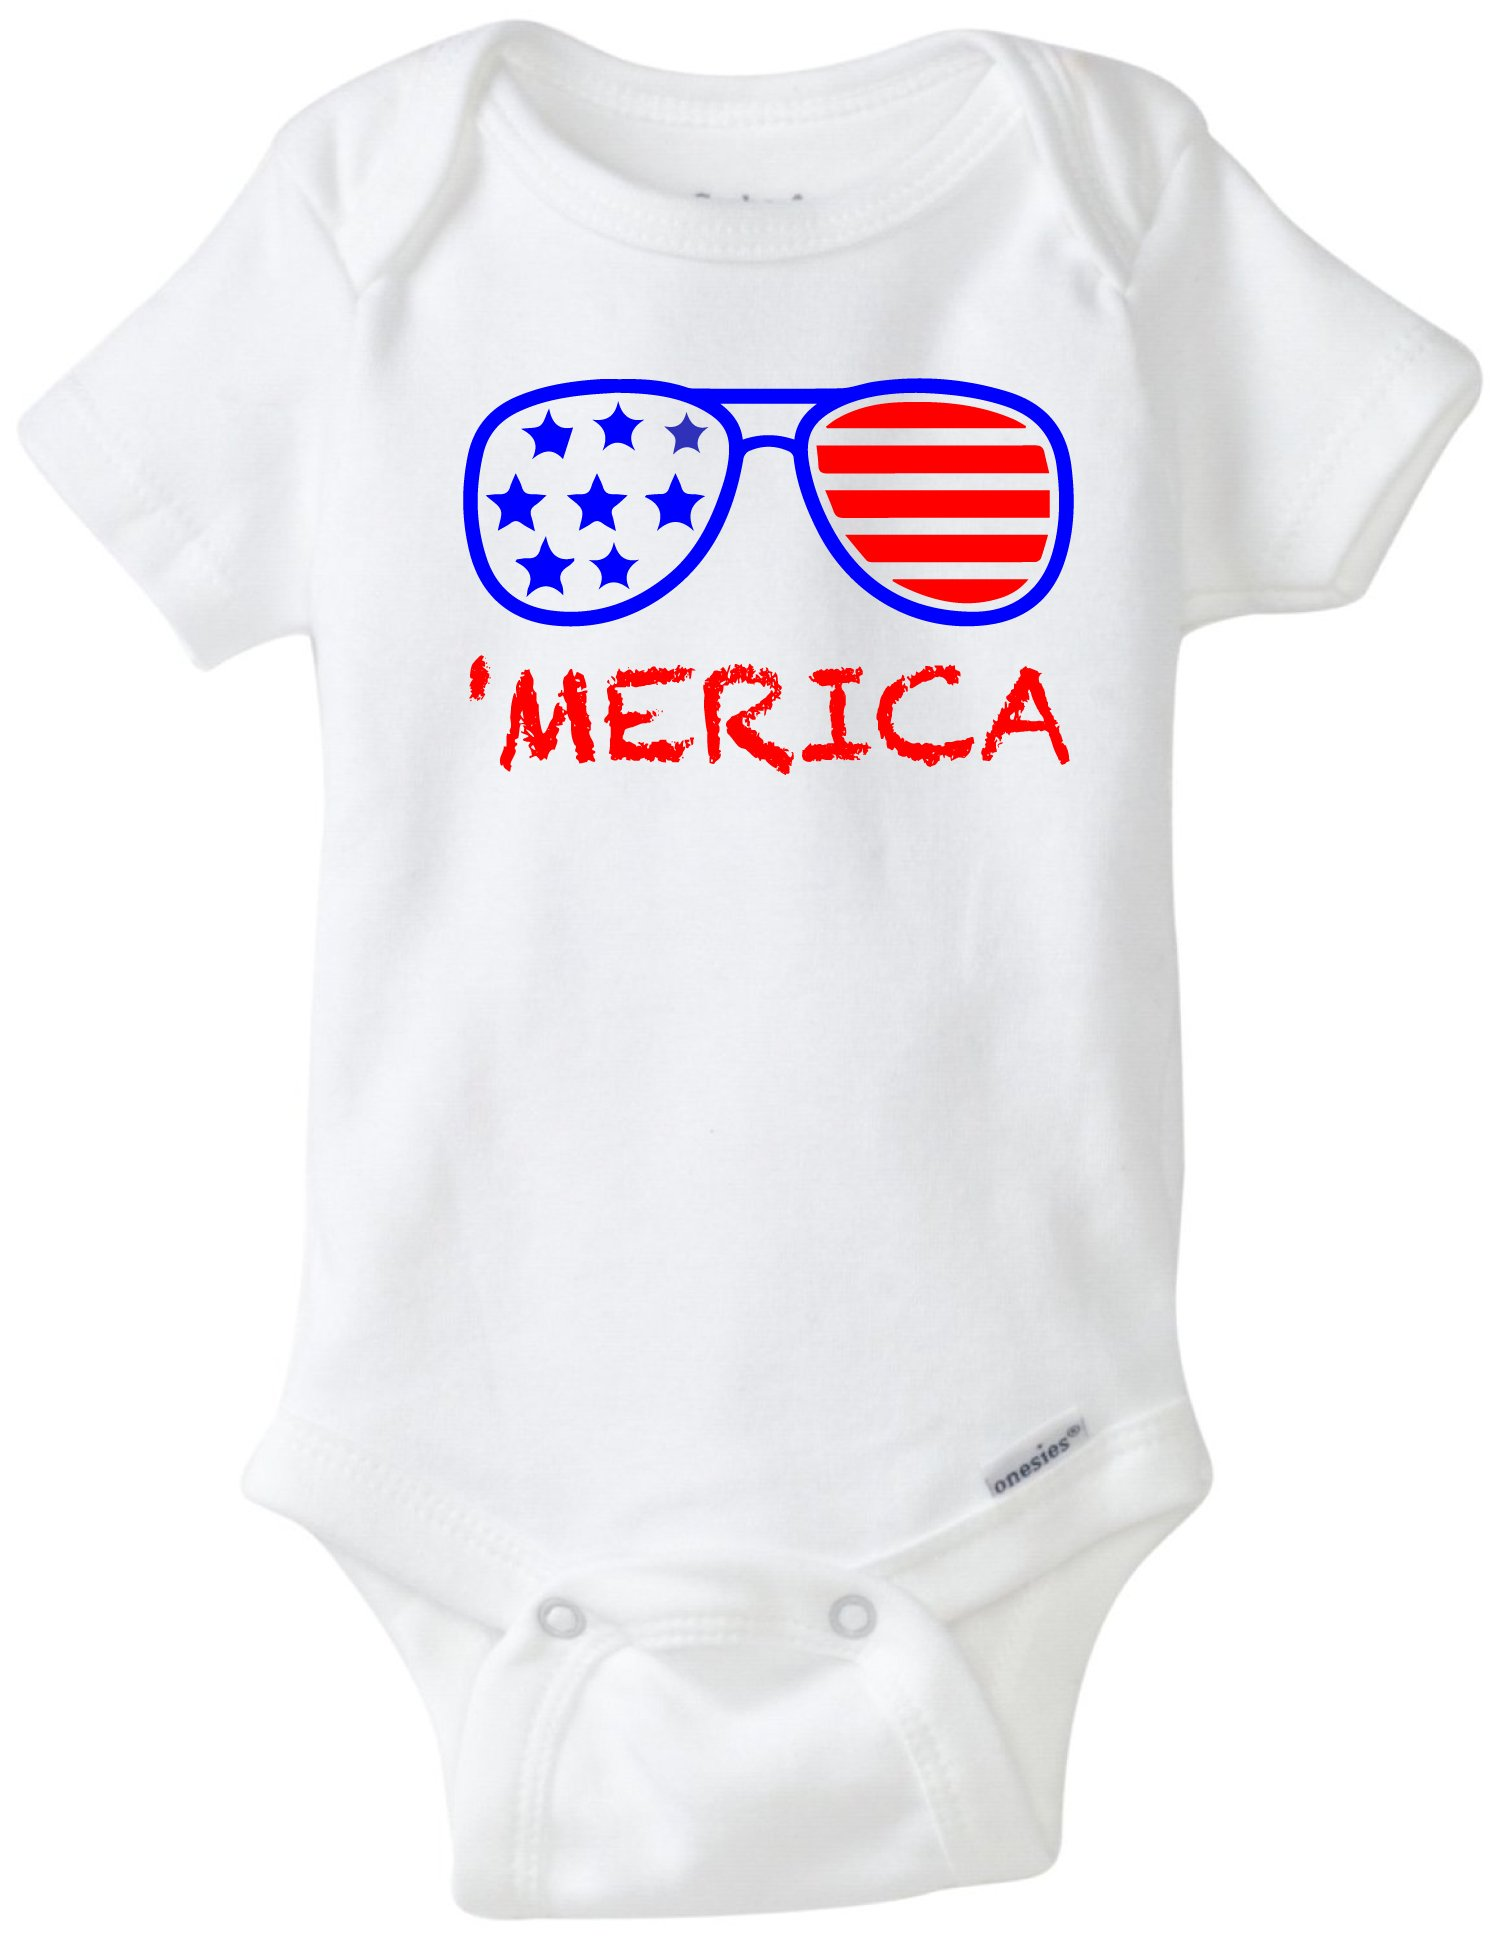 'Merica Sunglasses Patriotic 4th of July Funny Baby Onesie Blakenreag Baby Boy Girl Clothes Bodysuit (18 Month) by BLAKENREAG